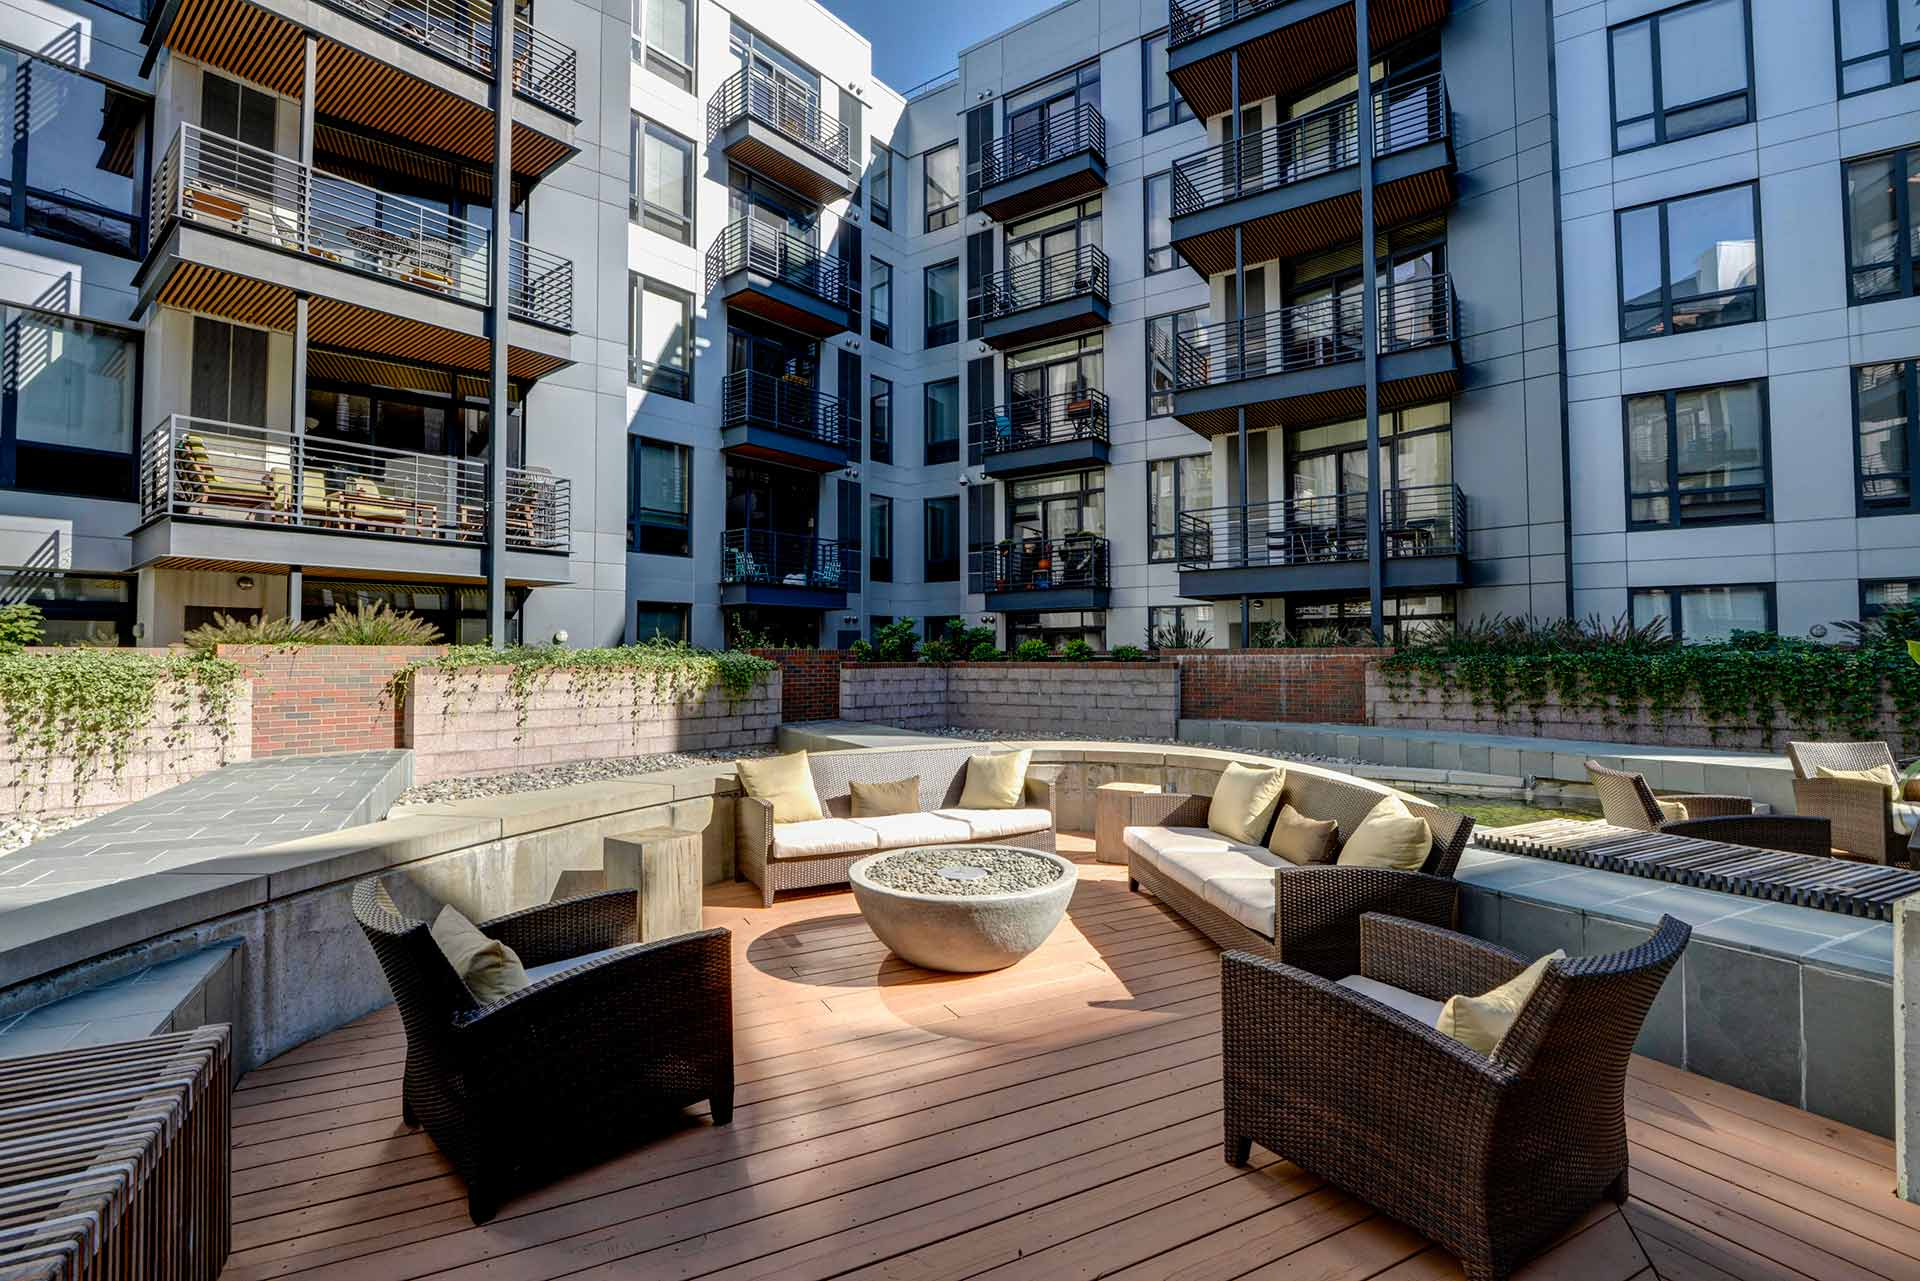 Interior courtyard closeup of lounge seating in the afternoon sunlight and view of surrounding multi-storied balconies